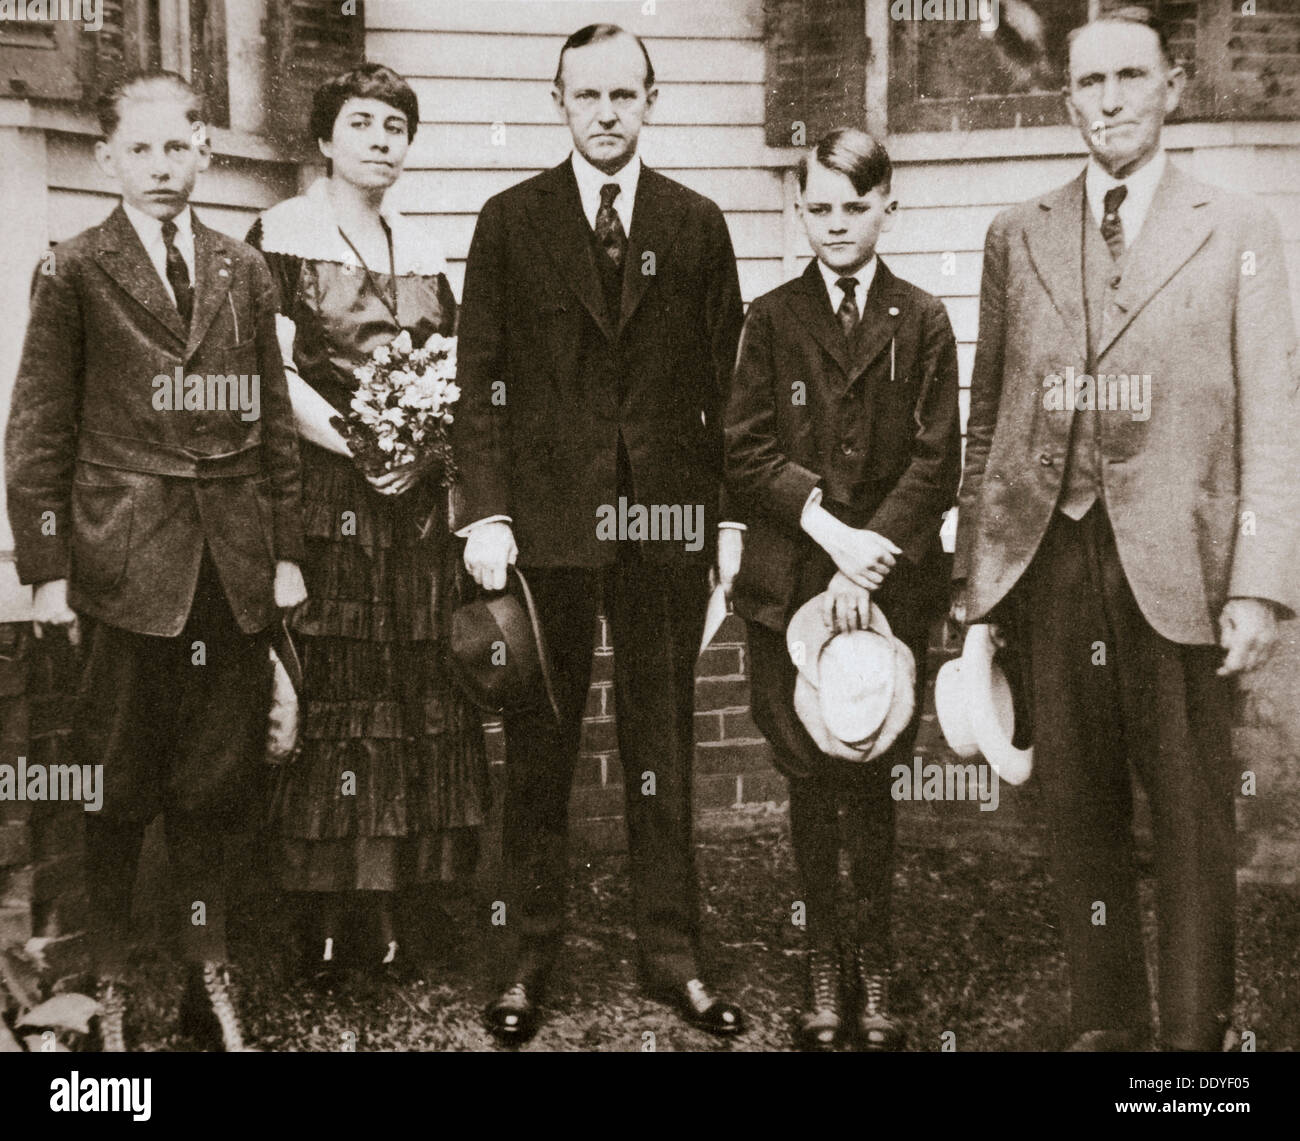 Calvin Coolidge, American politician, with his father, wife, and sons, 1920. Artist: Unknown Stock Photo